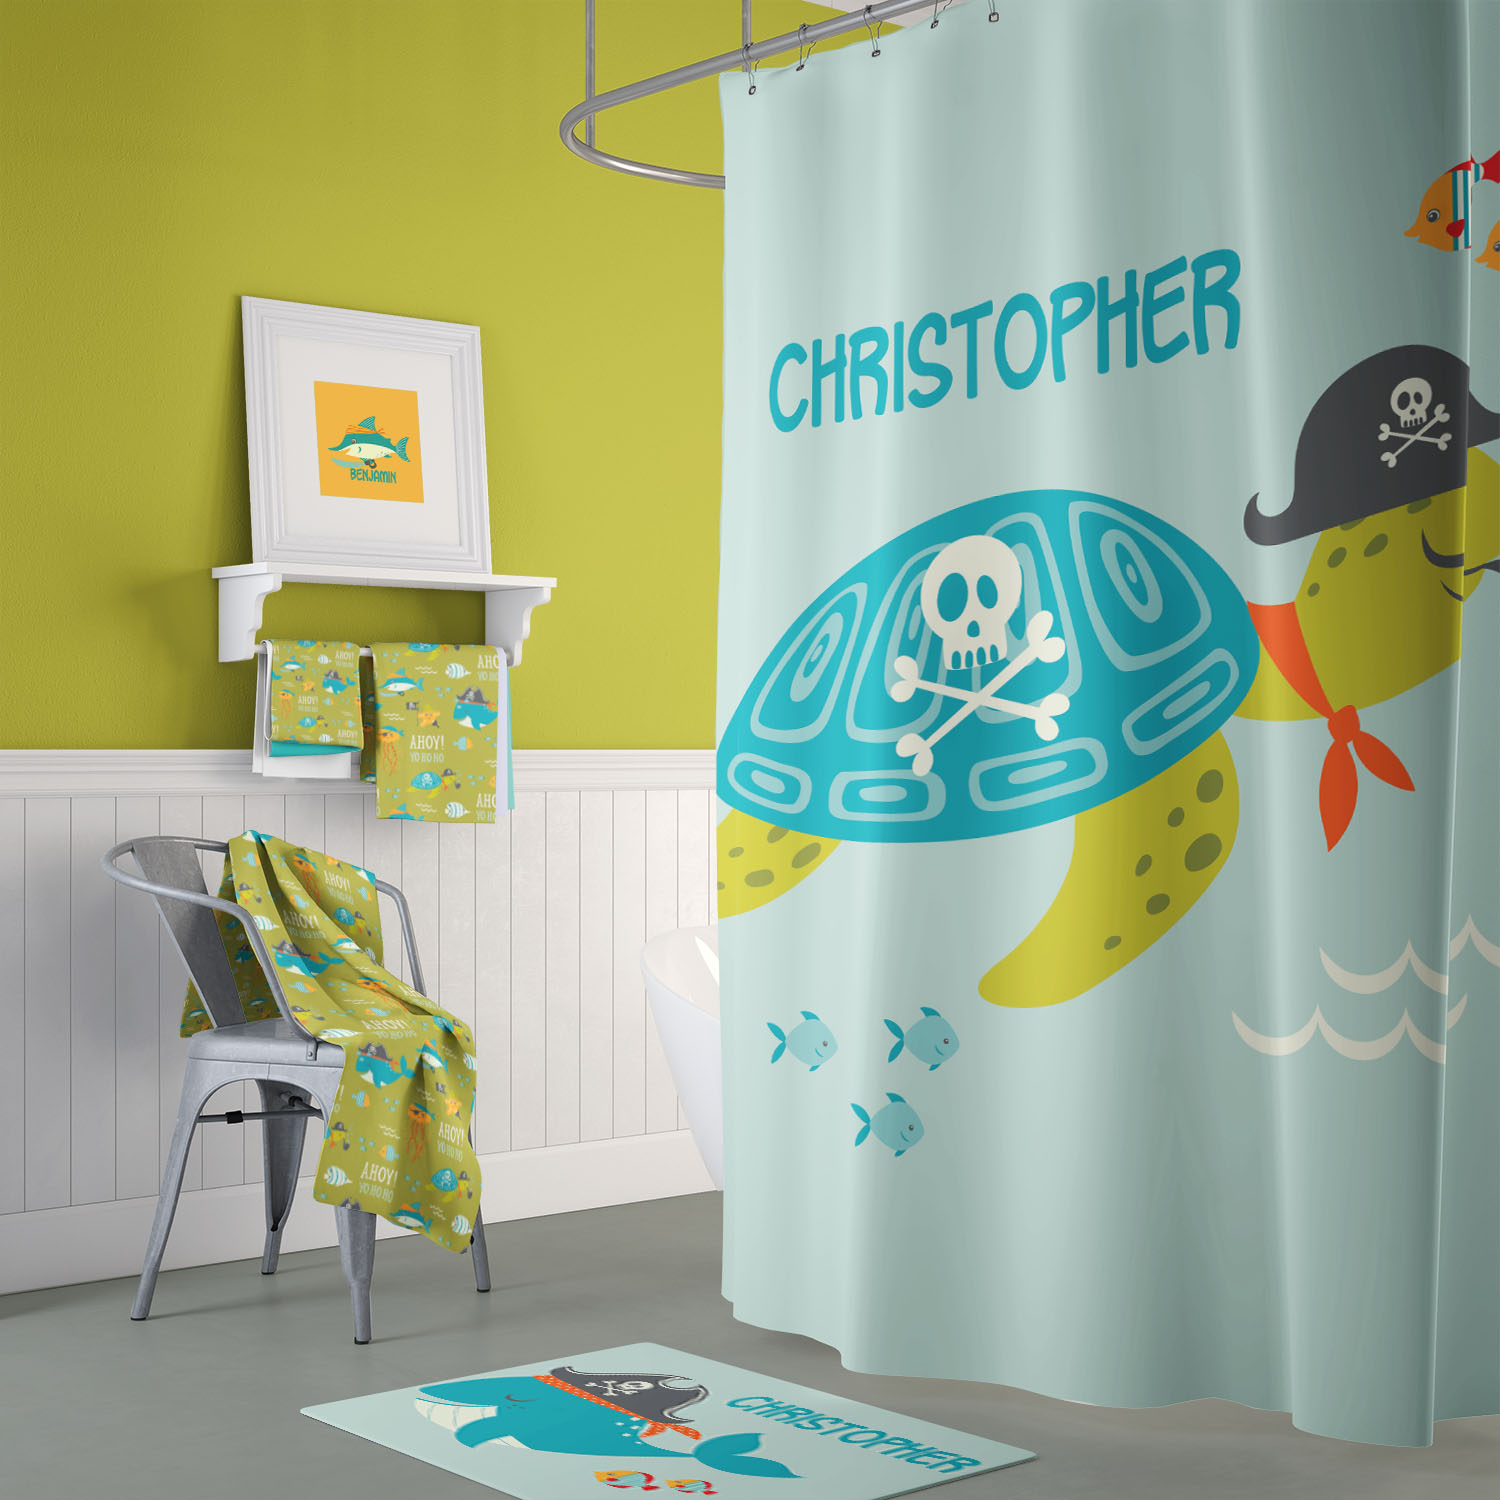 Ahoy Matey Pirate Adventure Kids Bathroom Accessories Shower Curtain Bath Mat Towels Decor by Pickleberry Kids